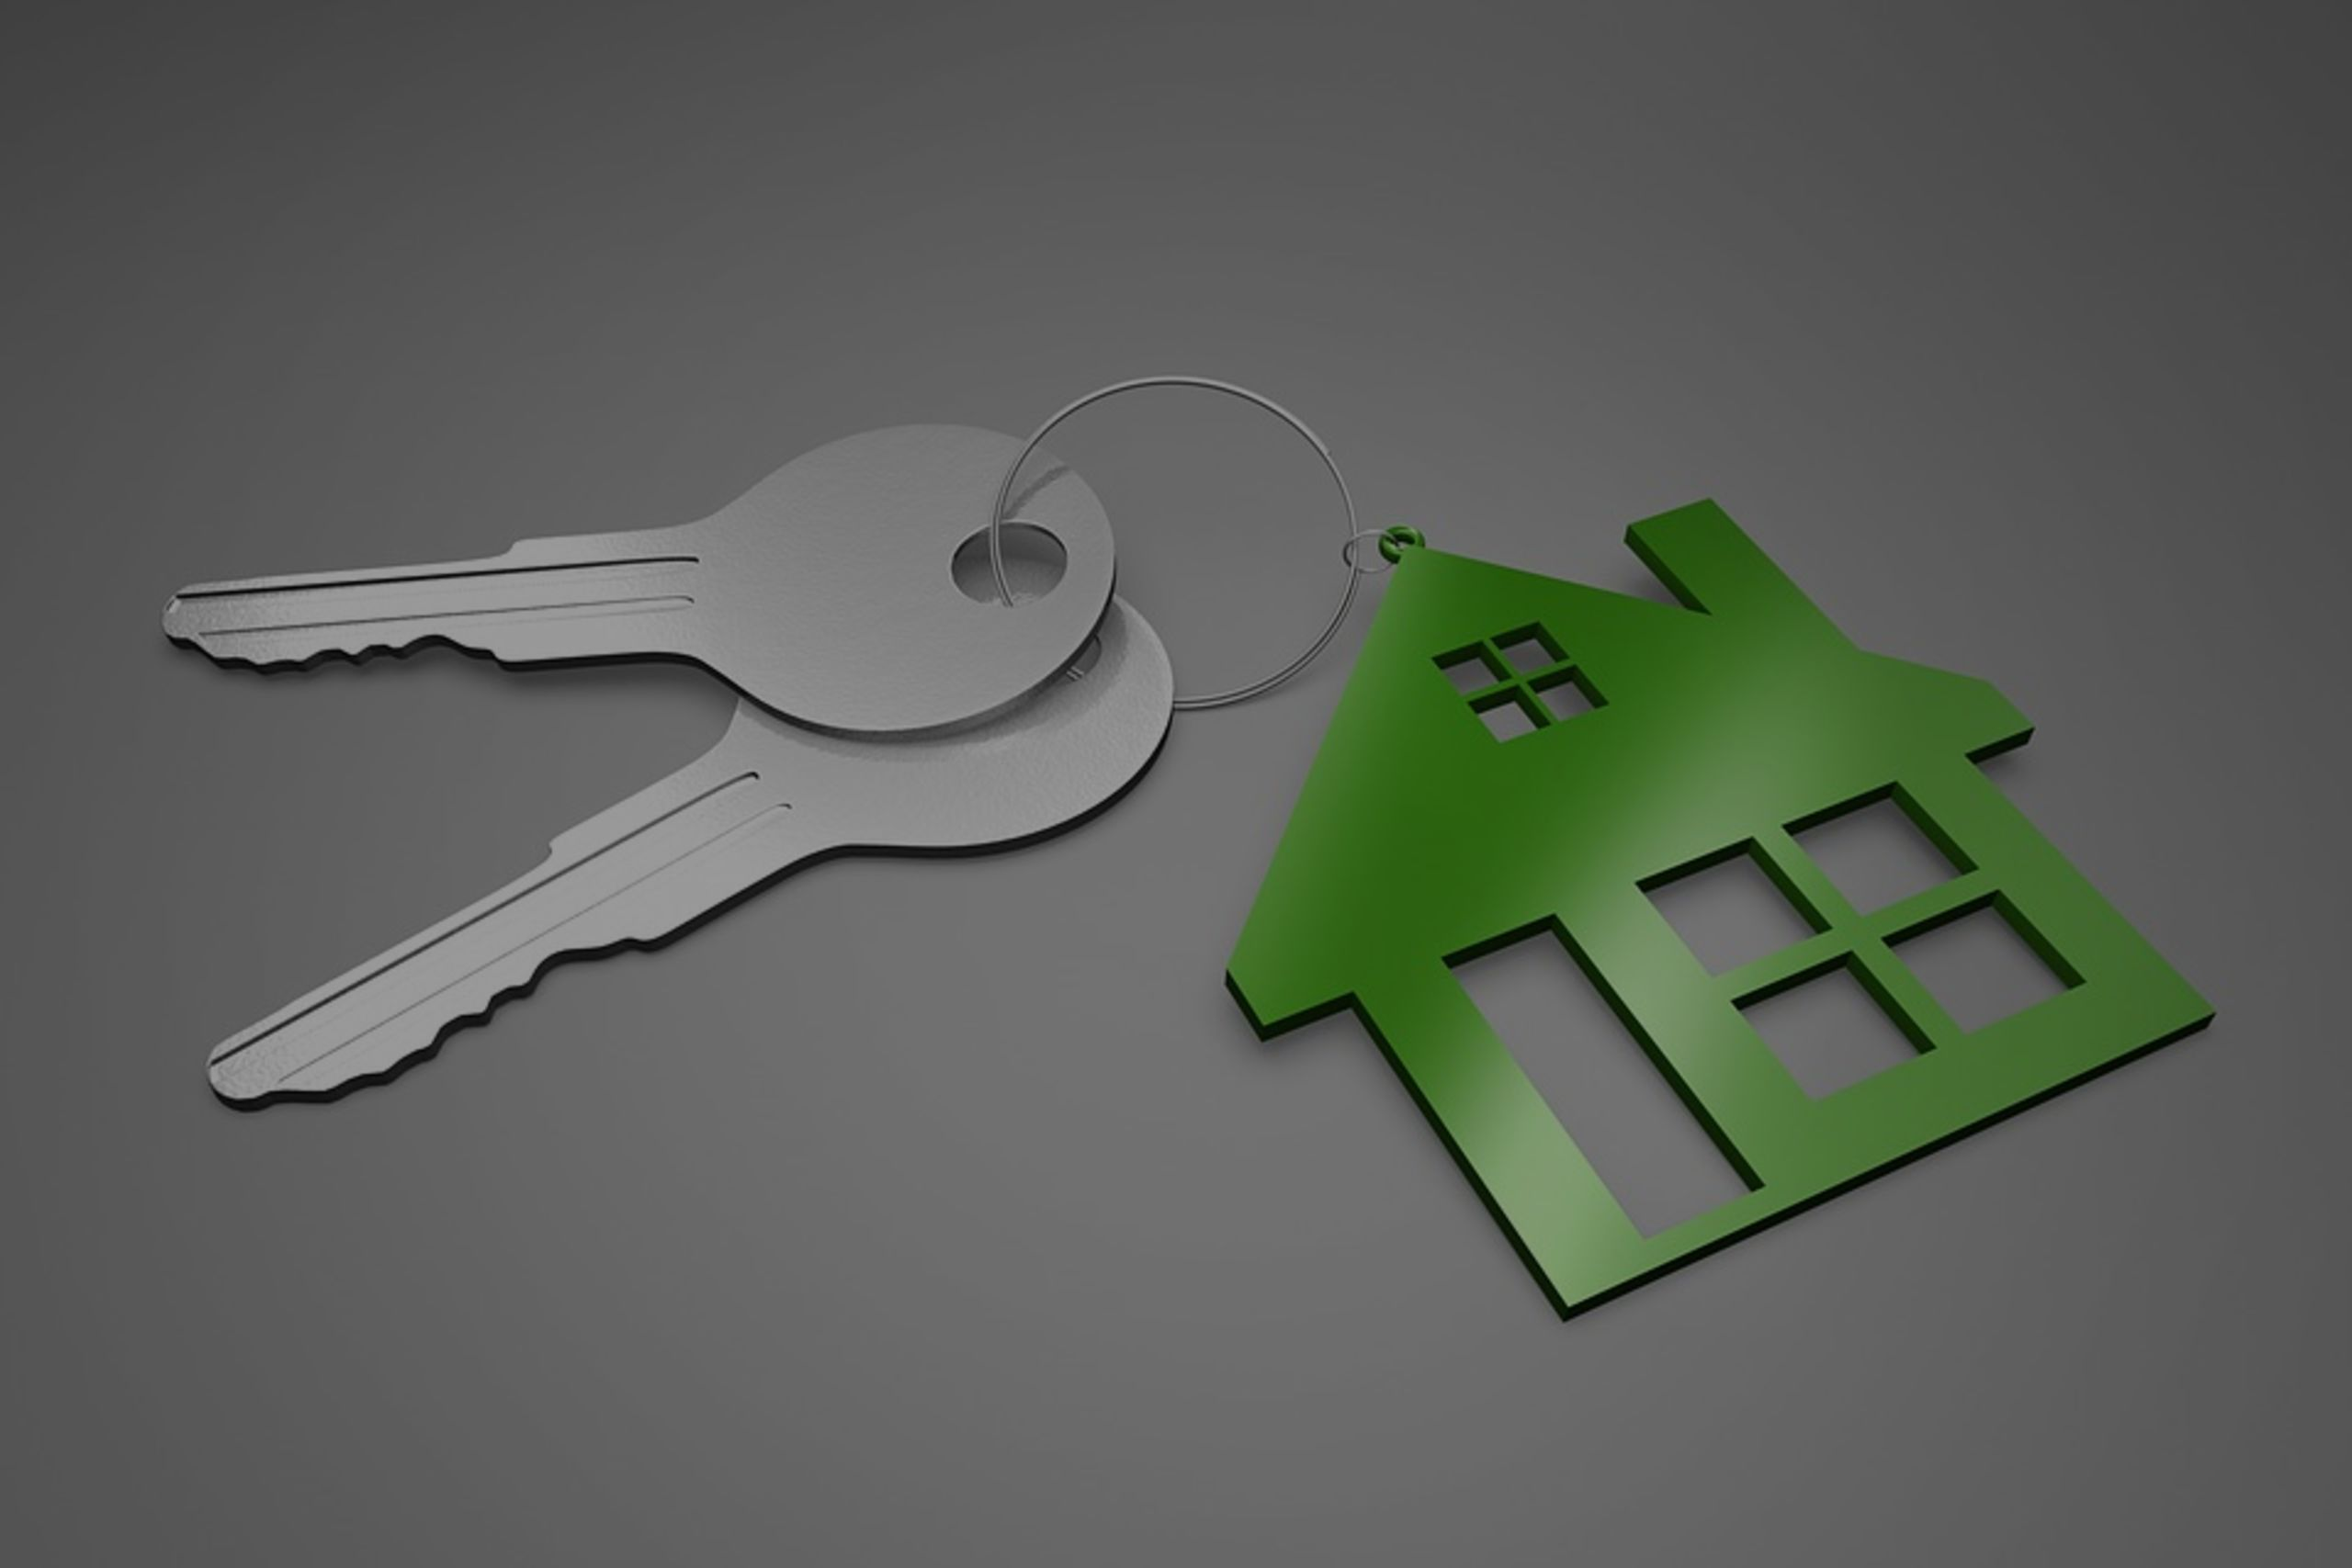 Top 5 Motivators to Buy or Sell a Home